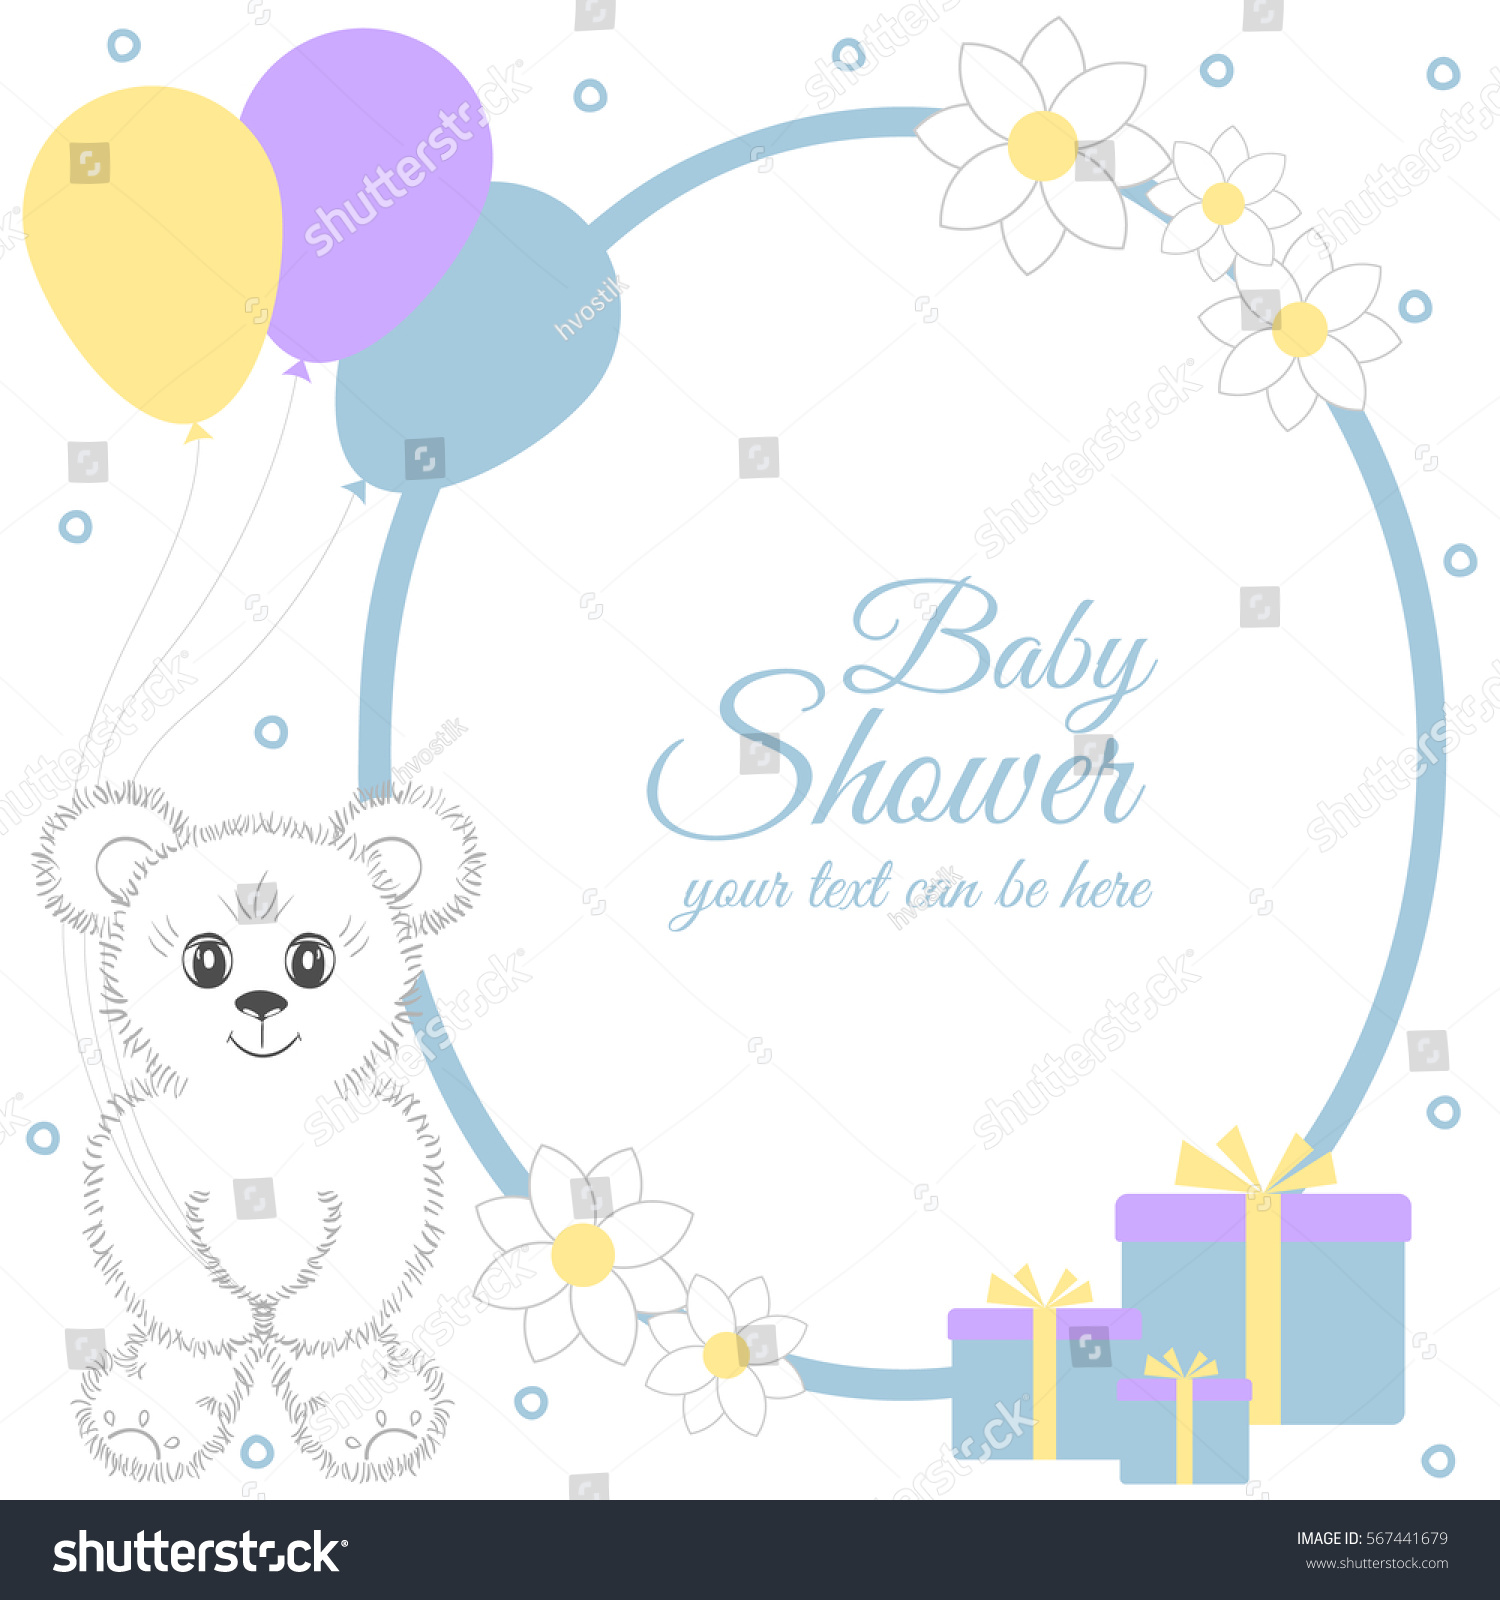 baby shower boy invitation card place stock vector 567441679 shutterstock. Black Bedroom Furniture Sets. Home Design Ideas